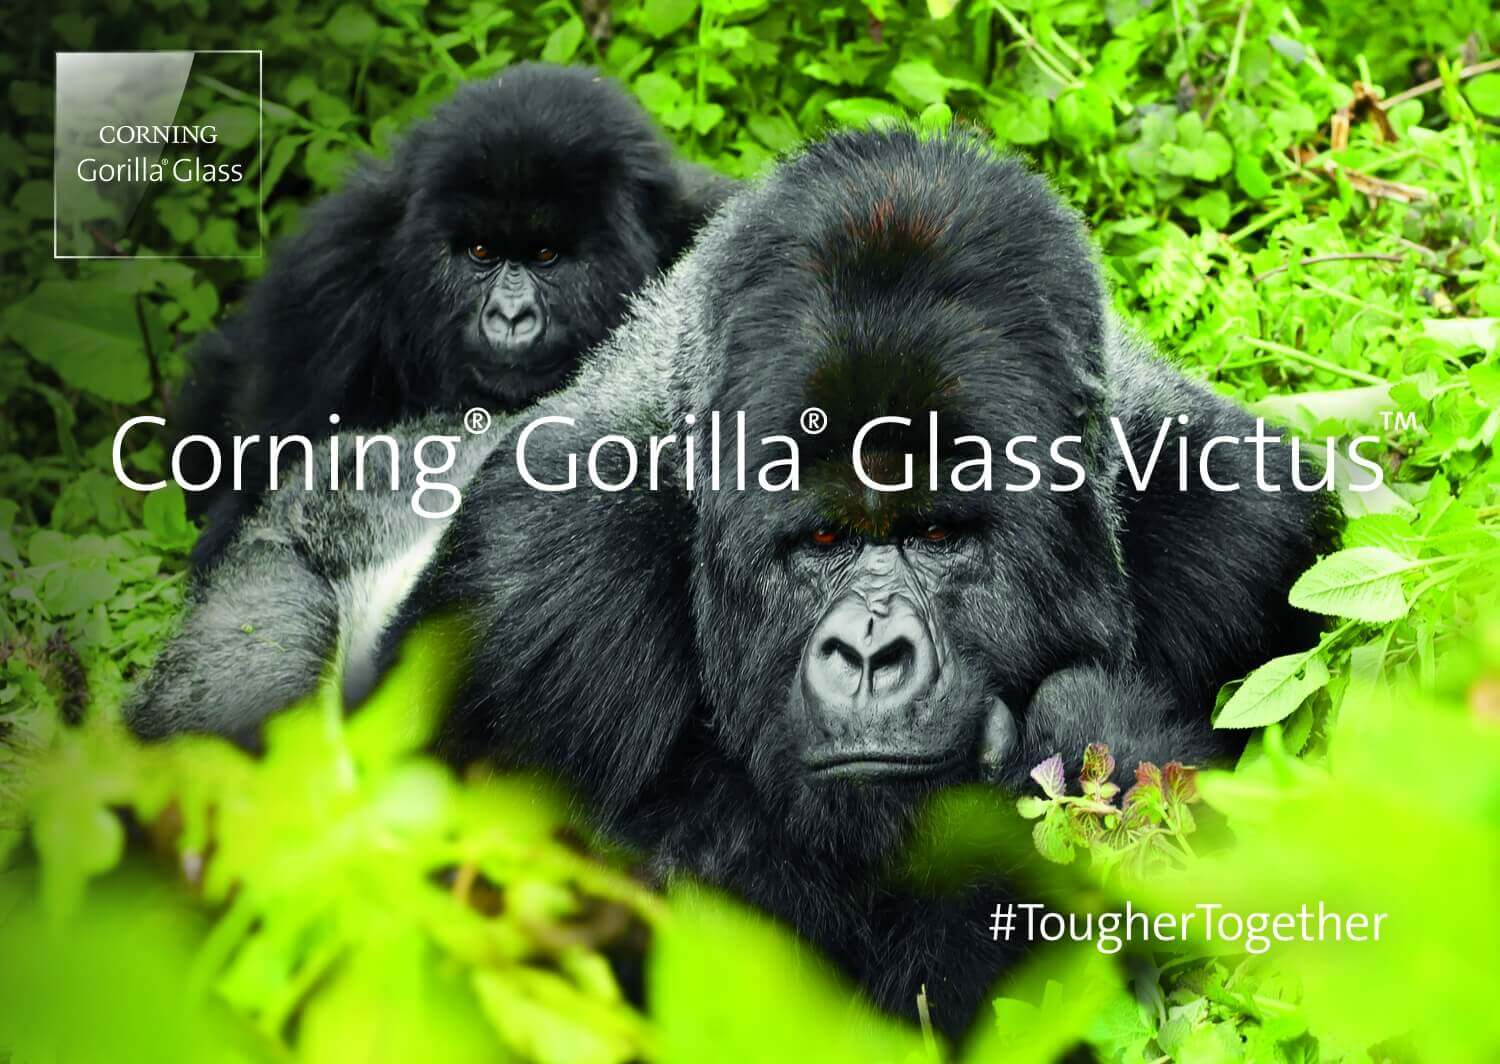 Corning's new Gorilla Glass Victus is 2x more scratch resistant than Gorilla Glass 6